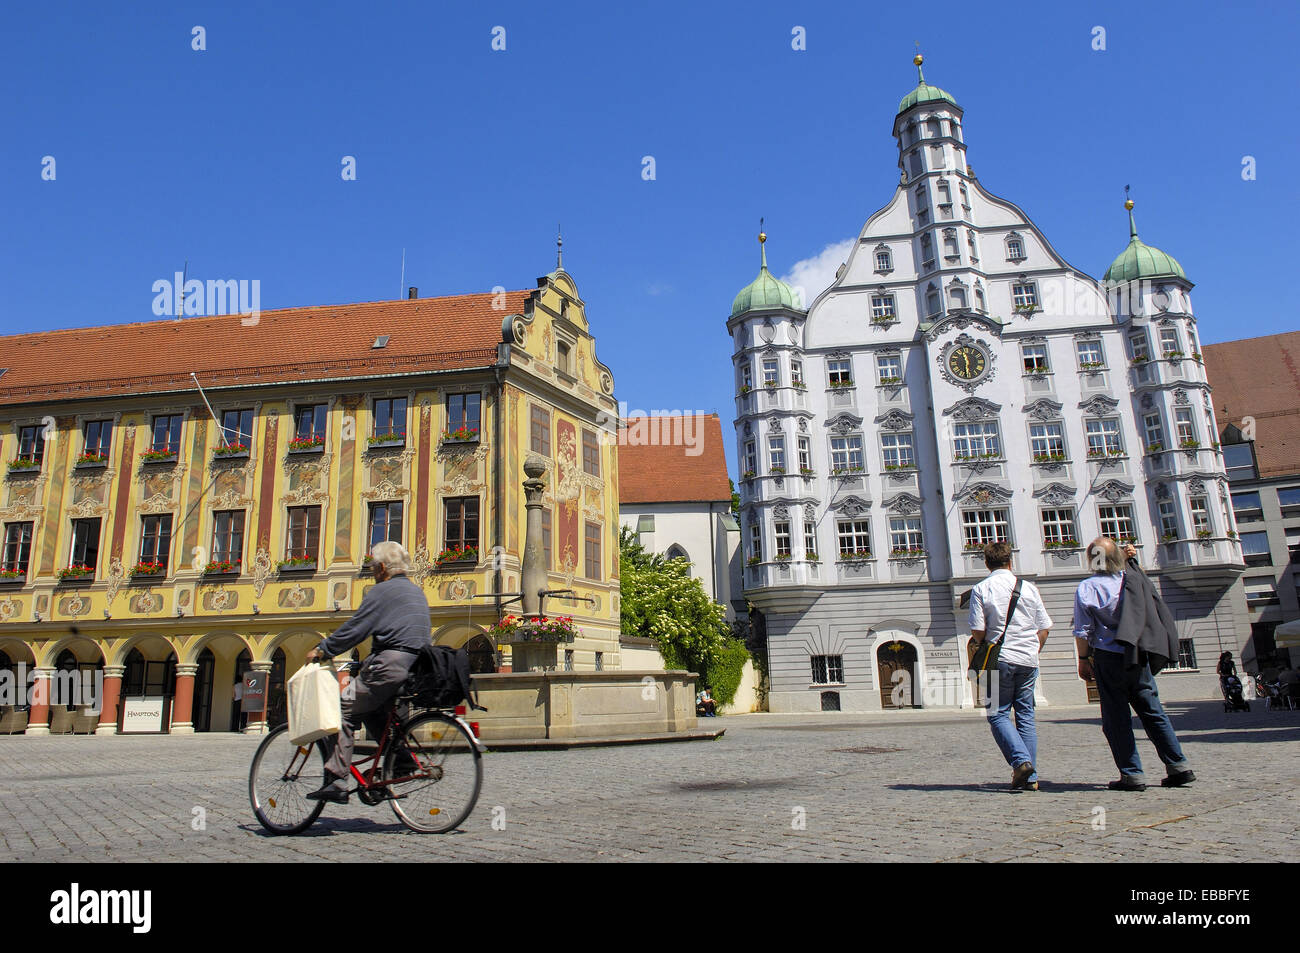 memmingen city geography germany stockfotos memmingen city geography germany bilder alamy. Black Bedroom Furniture Sets. Home Design Ideas